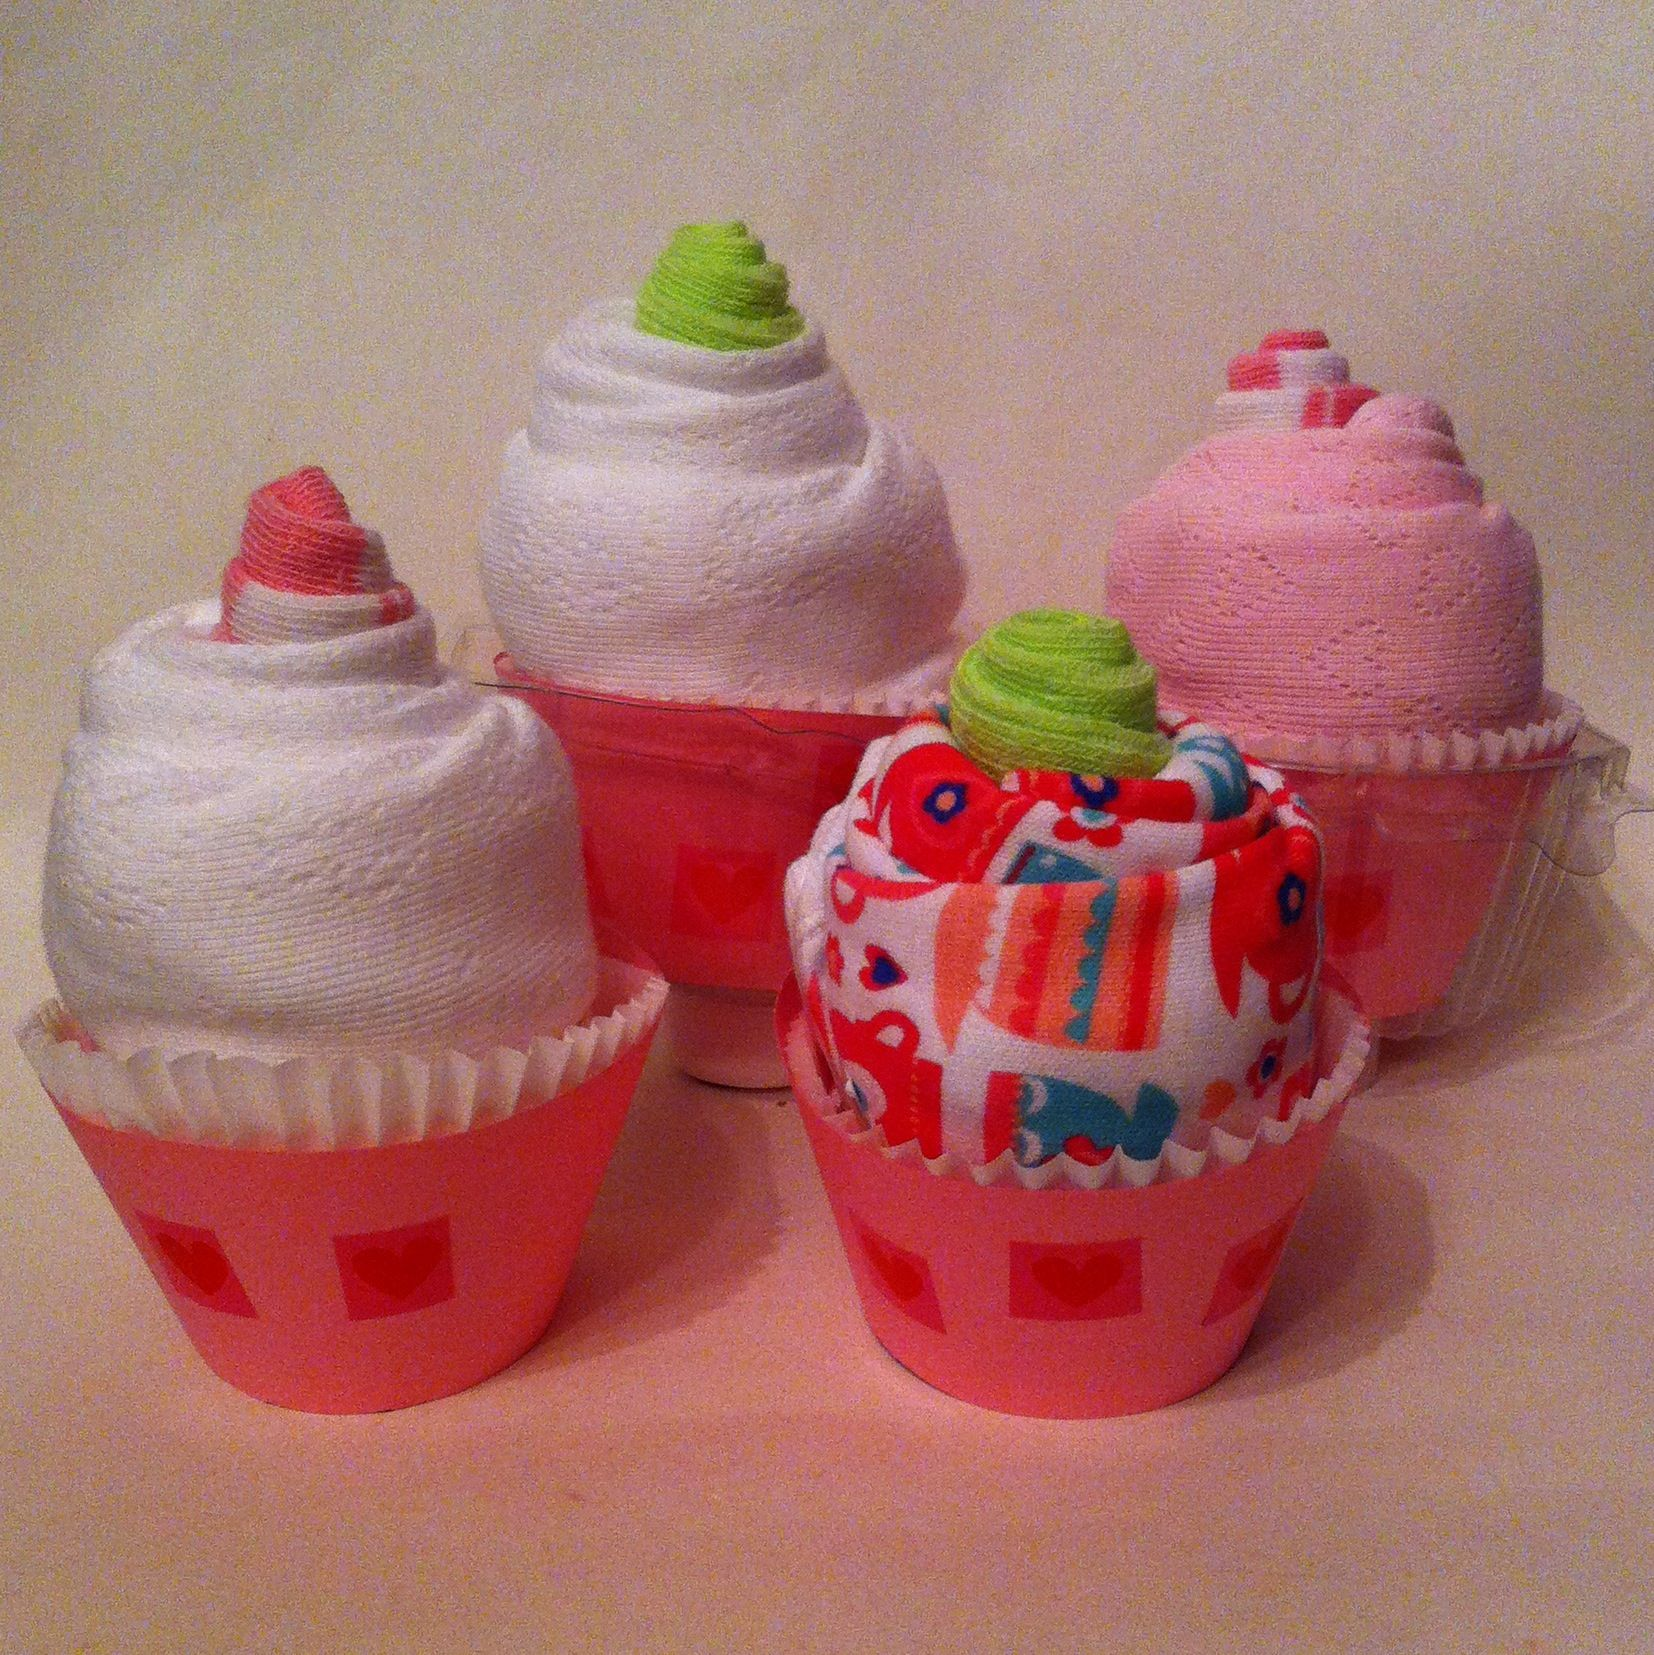 Baby Shower Cupcakes. Made with vests, bibs & socks.